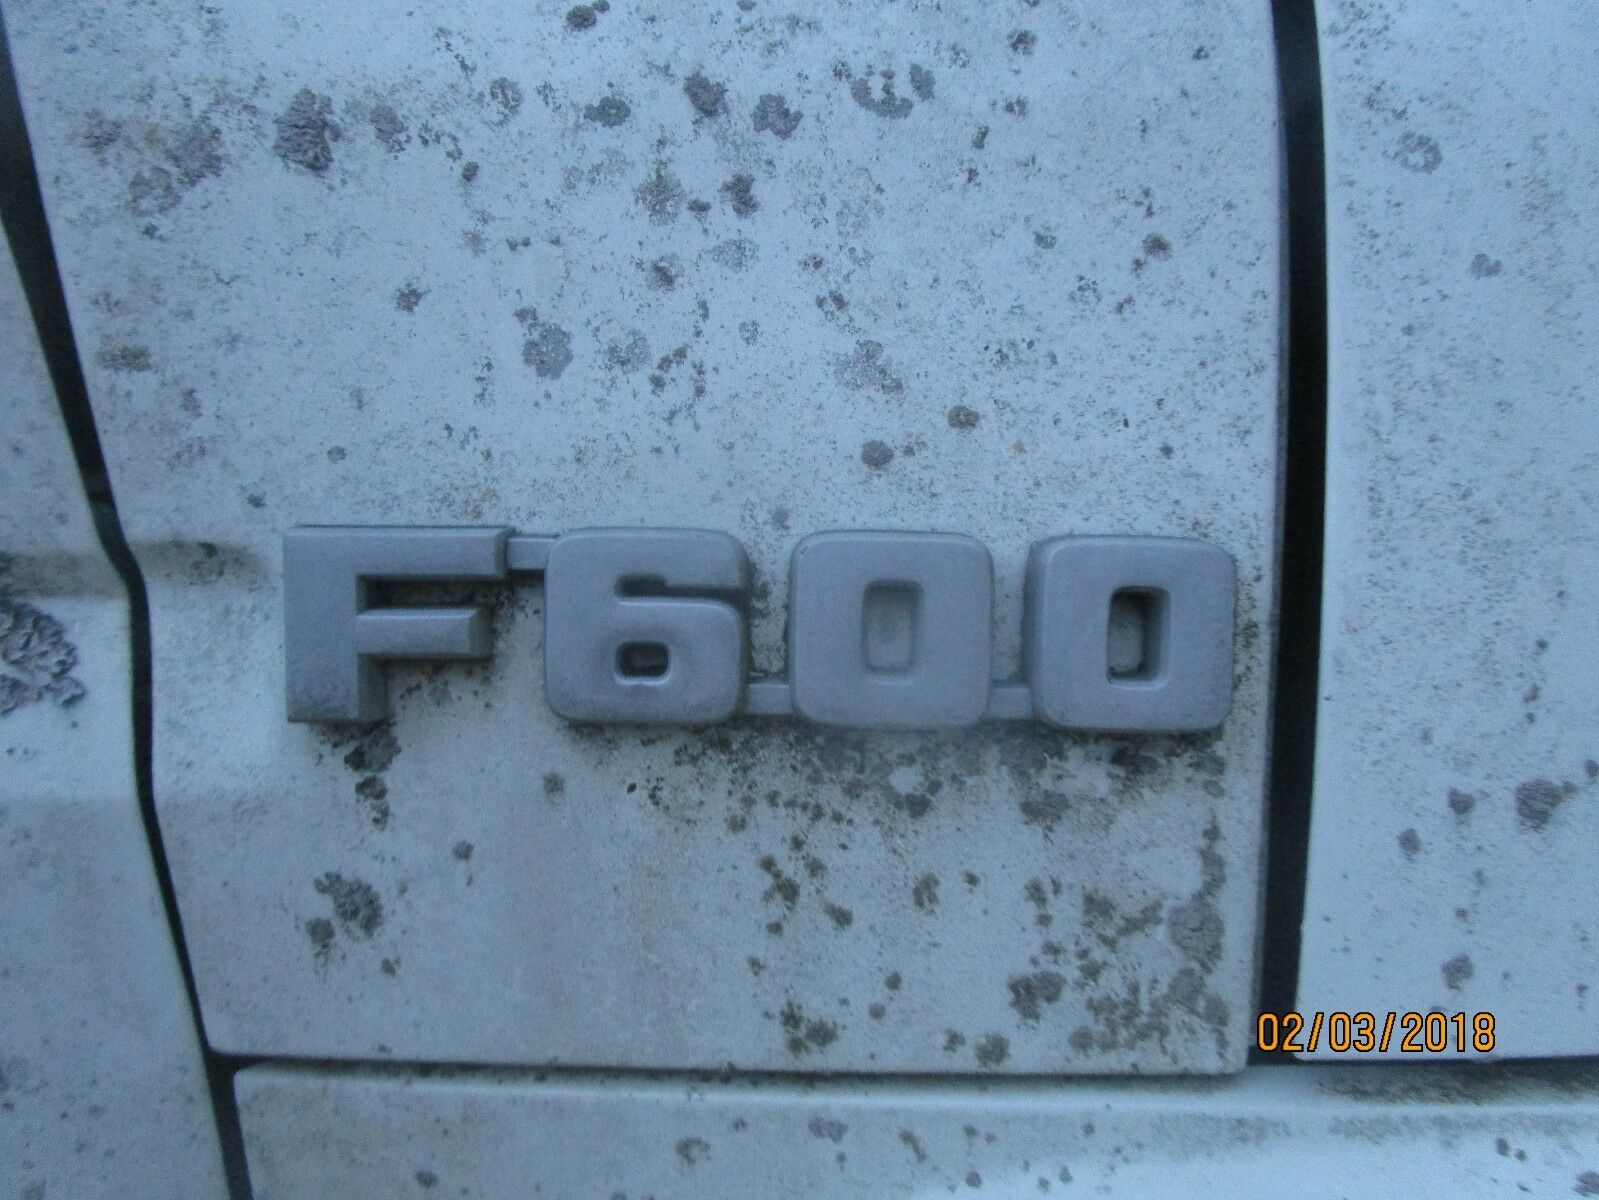 Used Ford F600 Exterior Parts For Sale 1954 Dump Truck 1980 1991 Front Emblem One